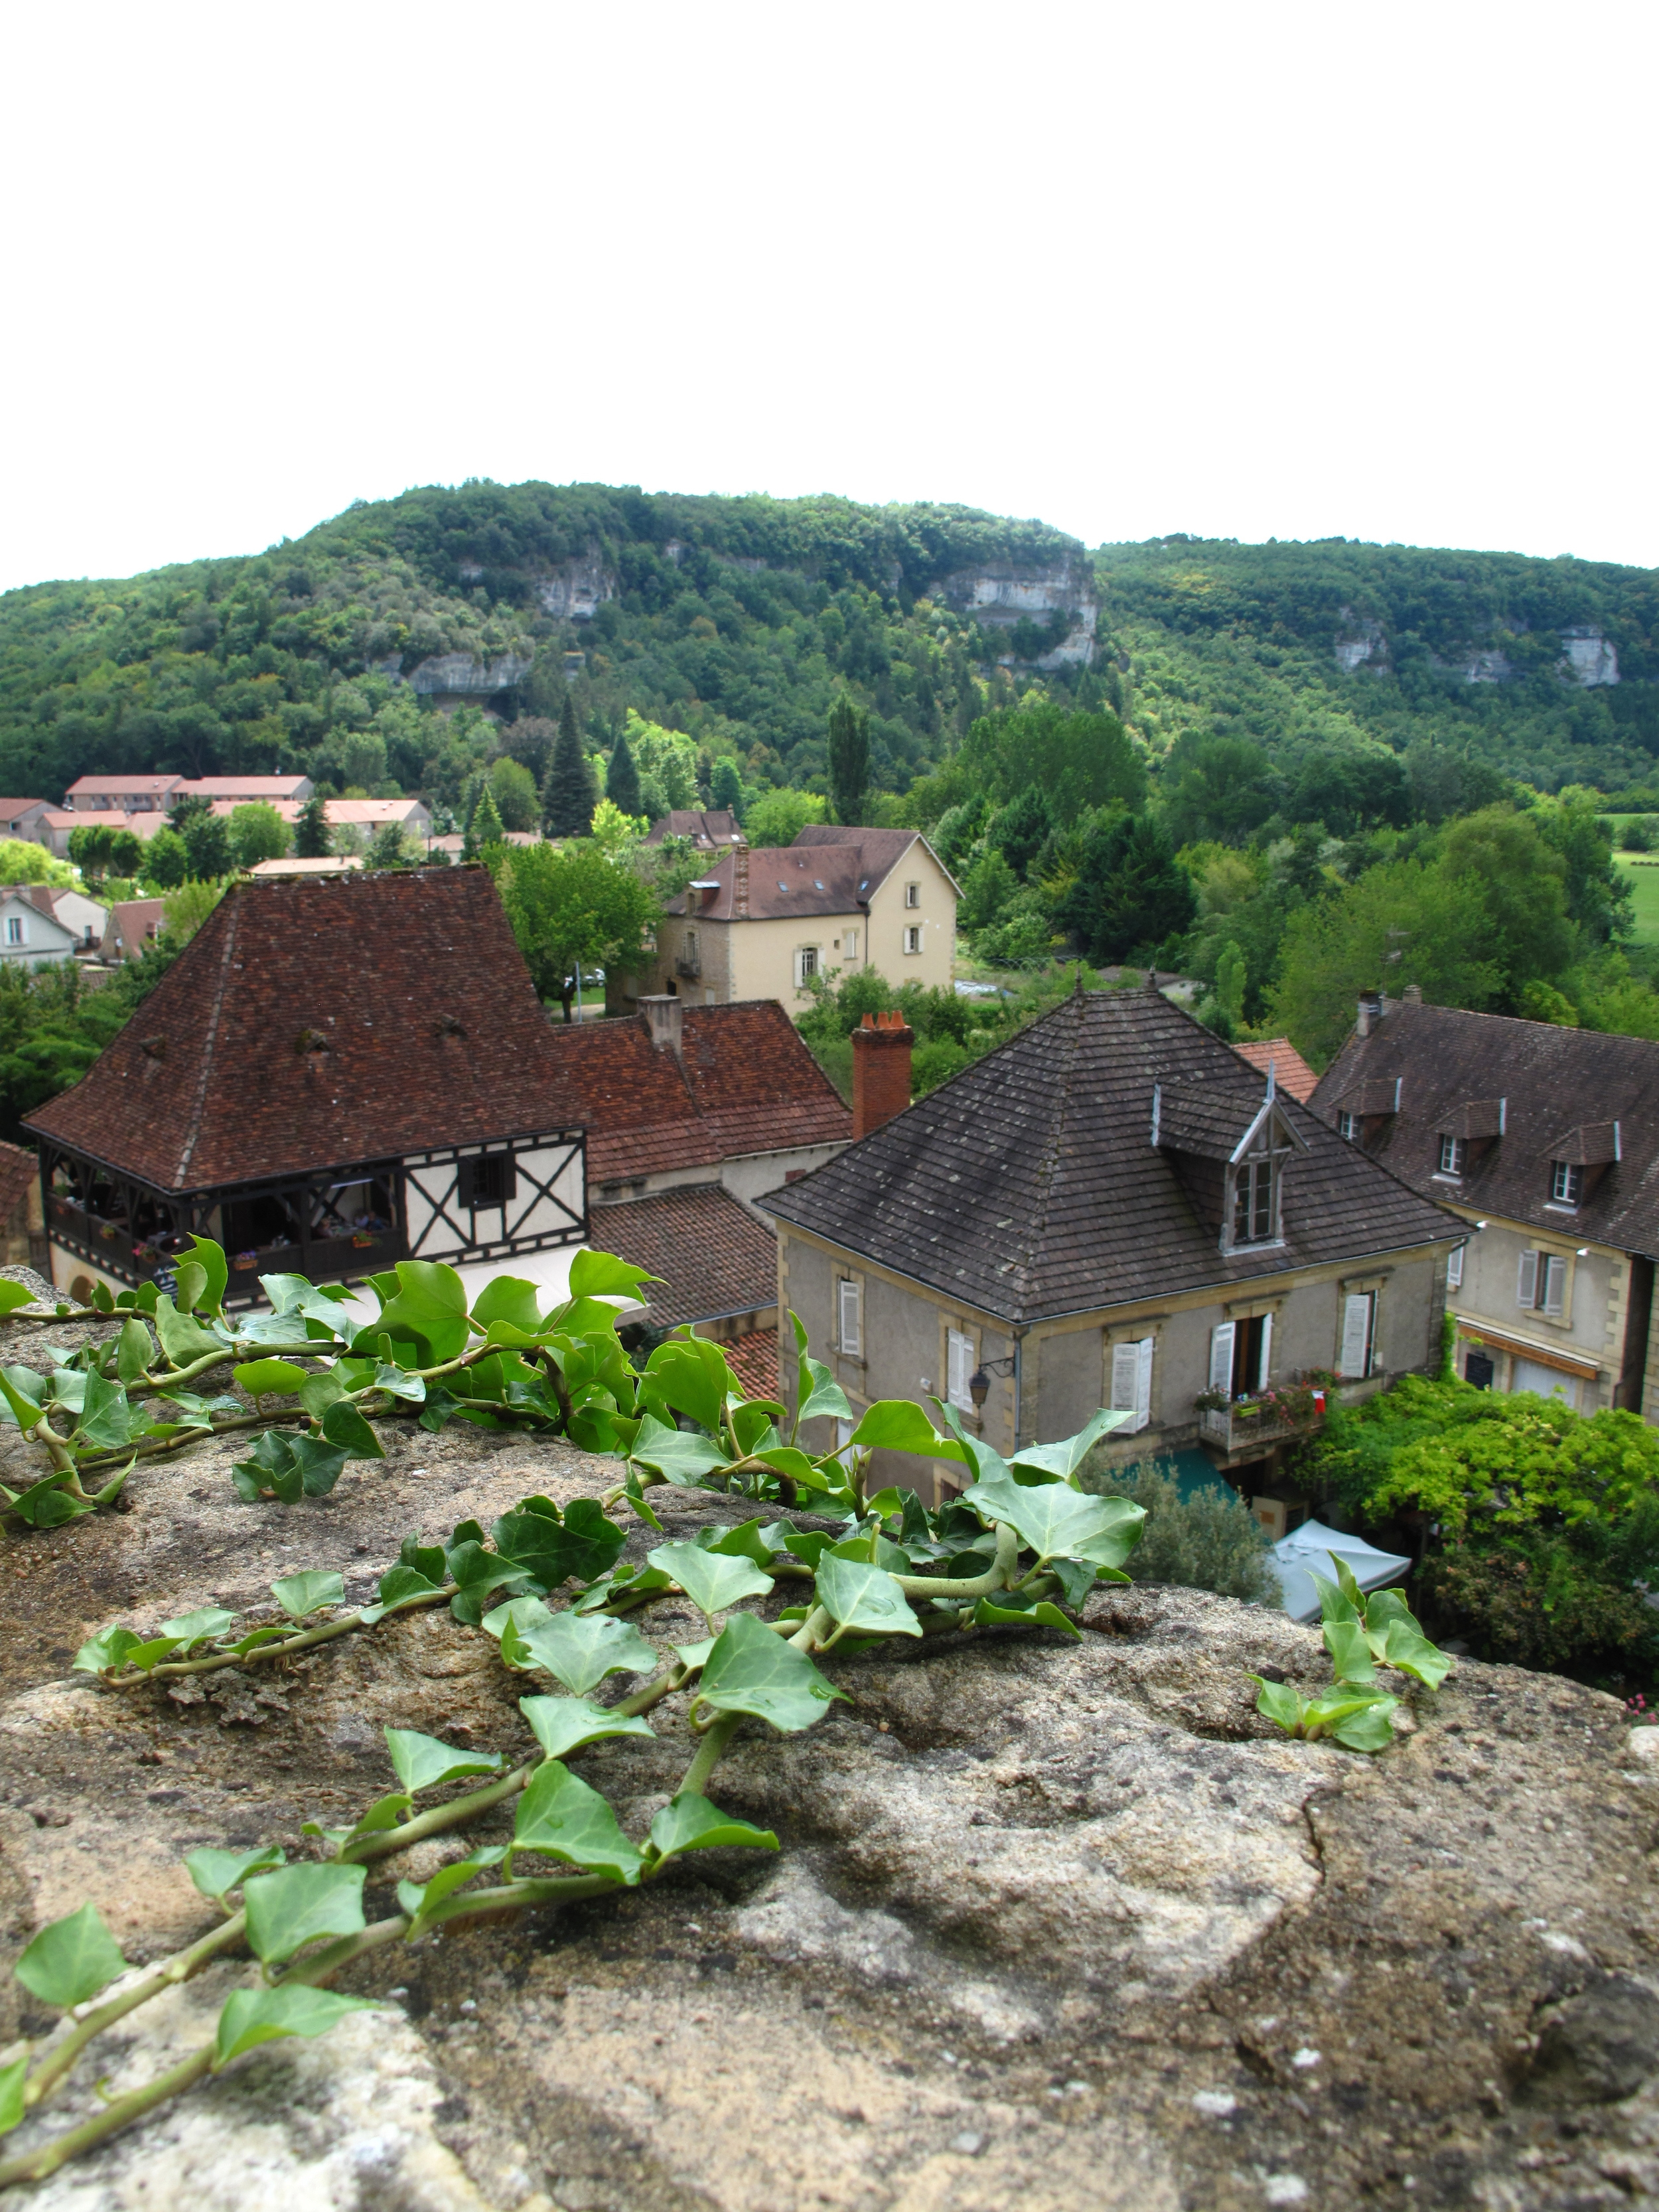 Les Eyzies de Tayac, looking out from the stone wall to the rooftops of the Dordogne village